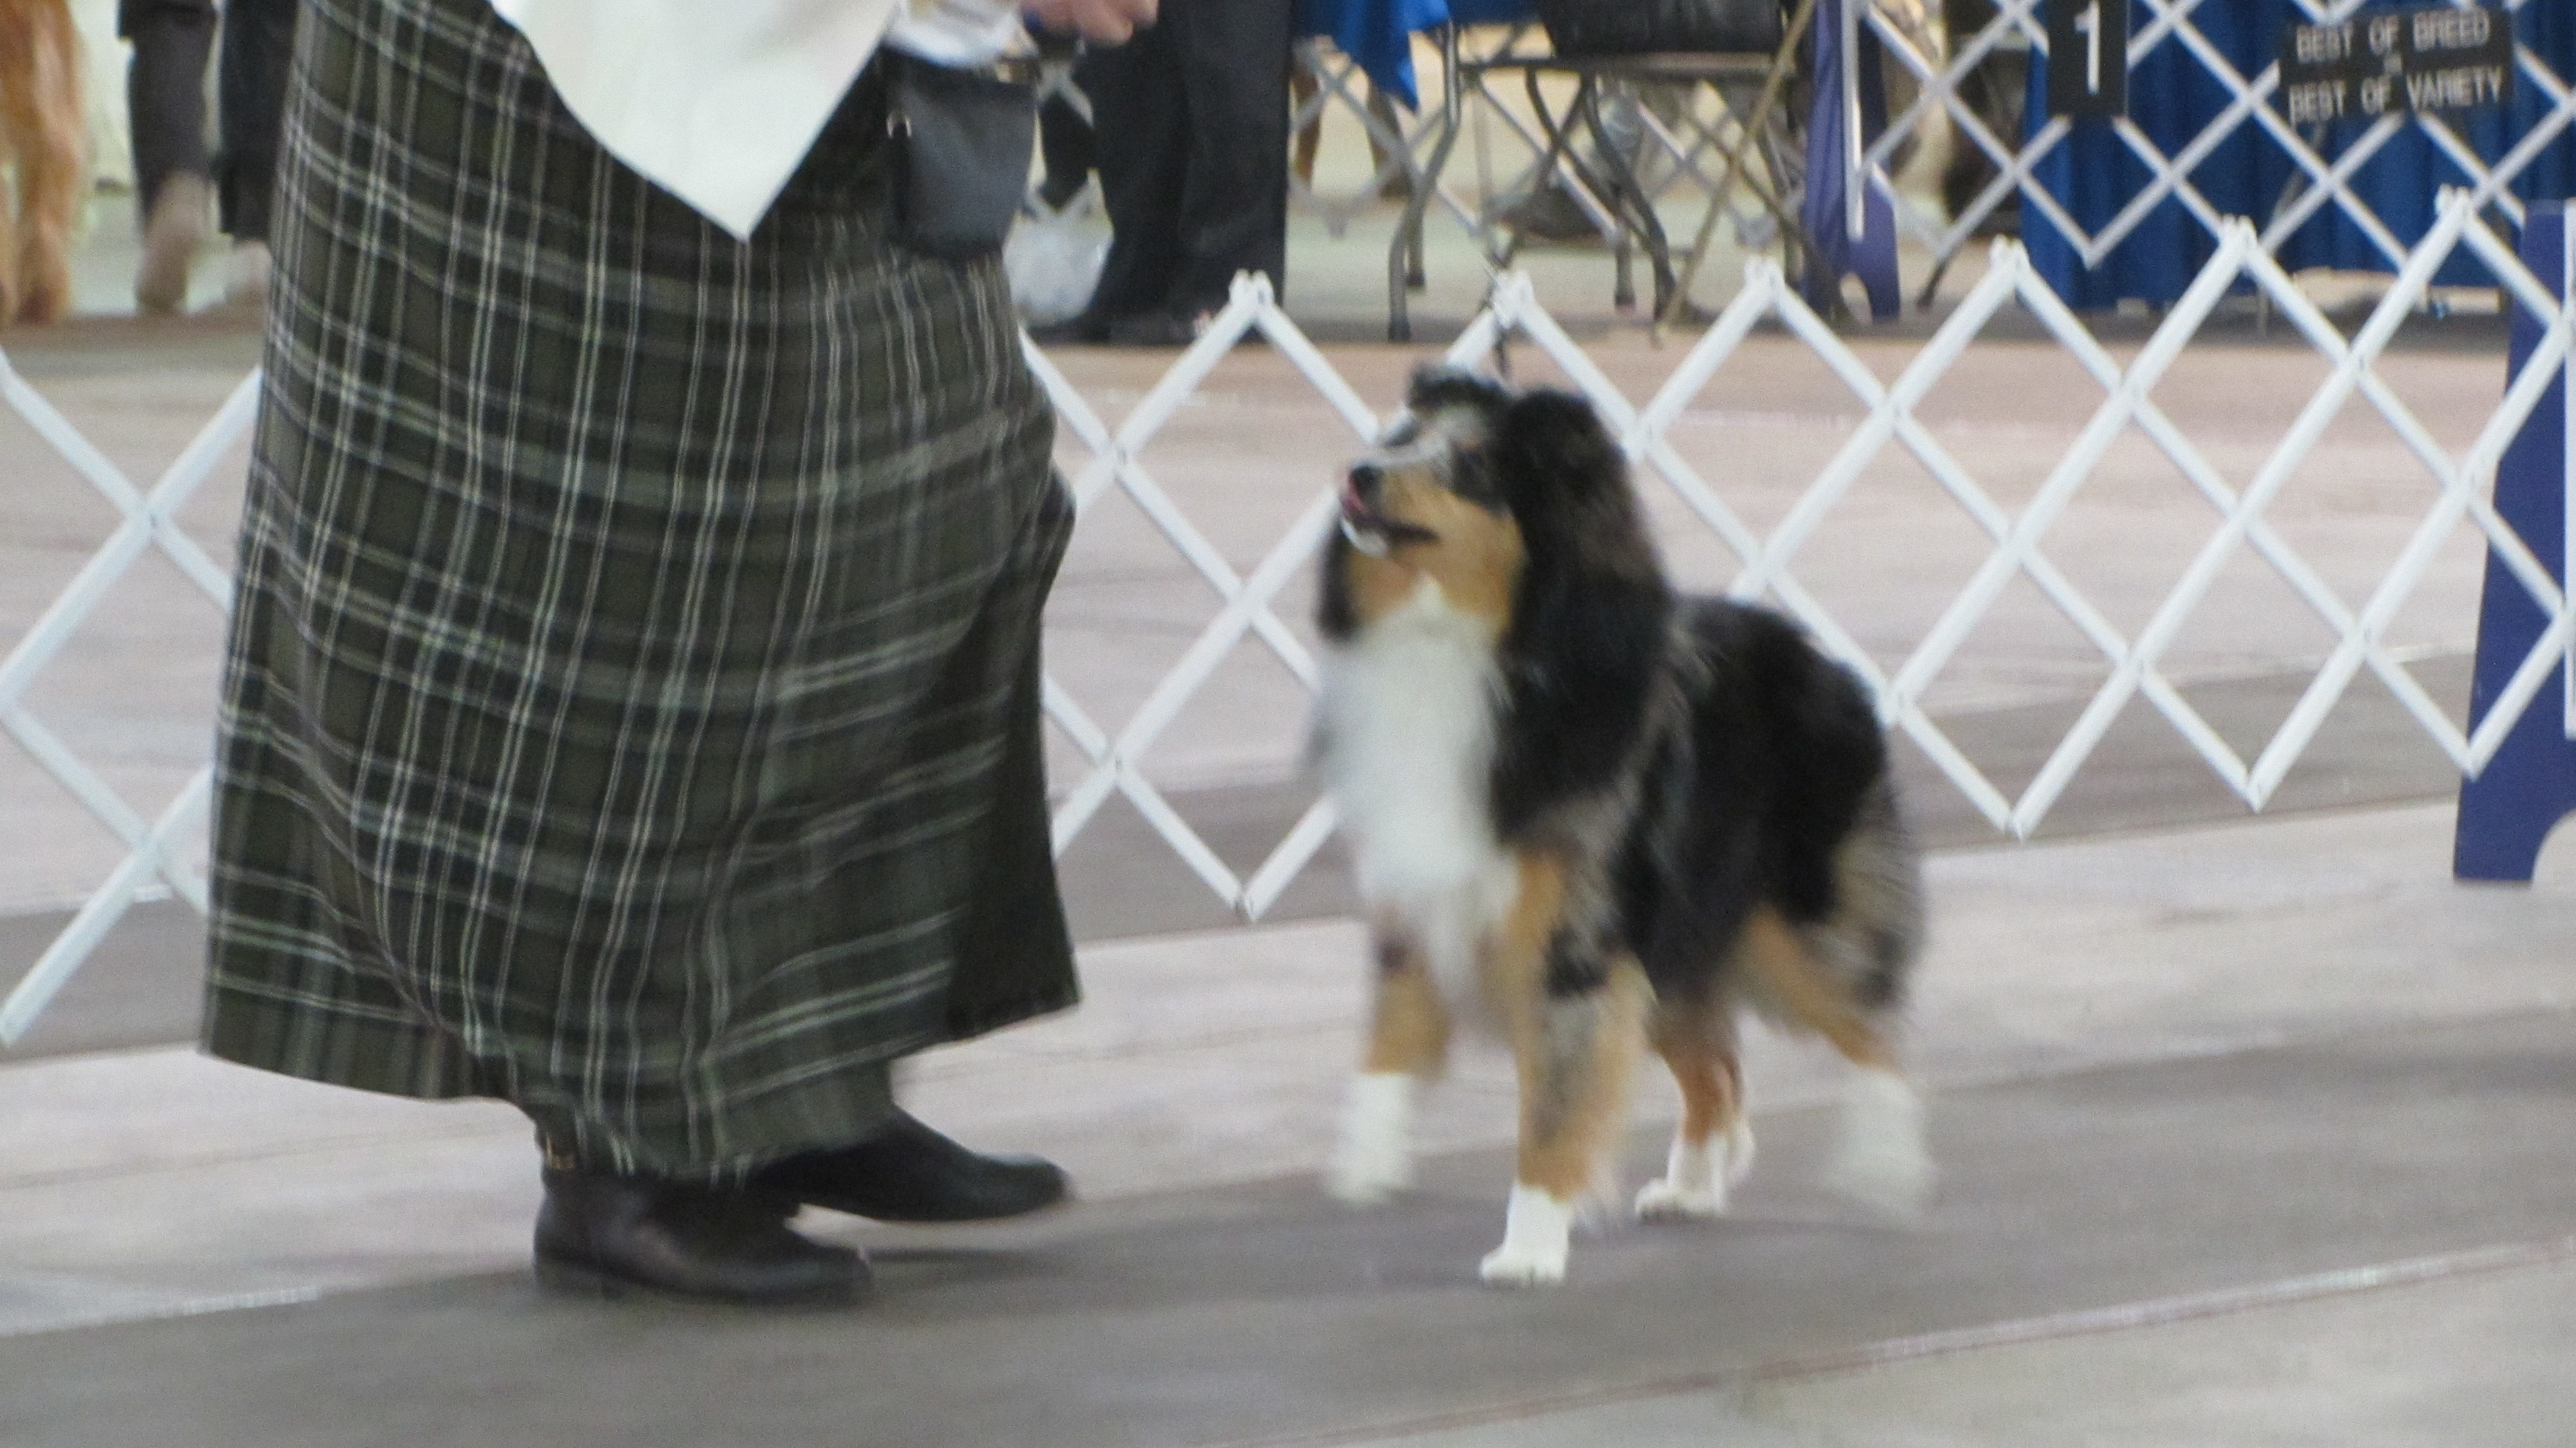 Wyndeway shetland sheepdogs presently i show in conformation rally obedience and all types of cgc events at akc ckc ukc events as well as canadian and american shetland sheepdog nvjuhfo Images